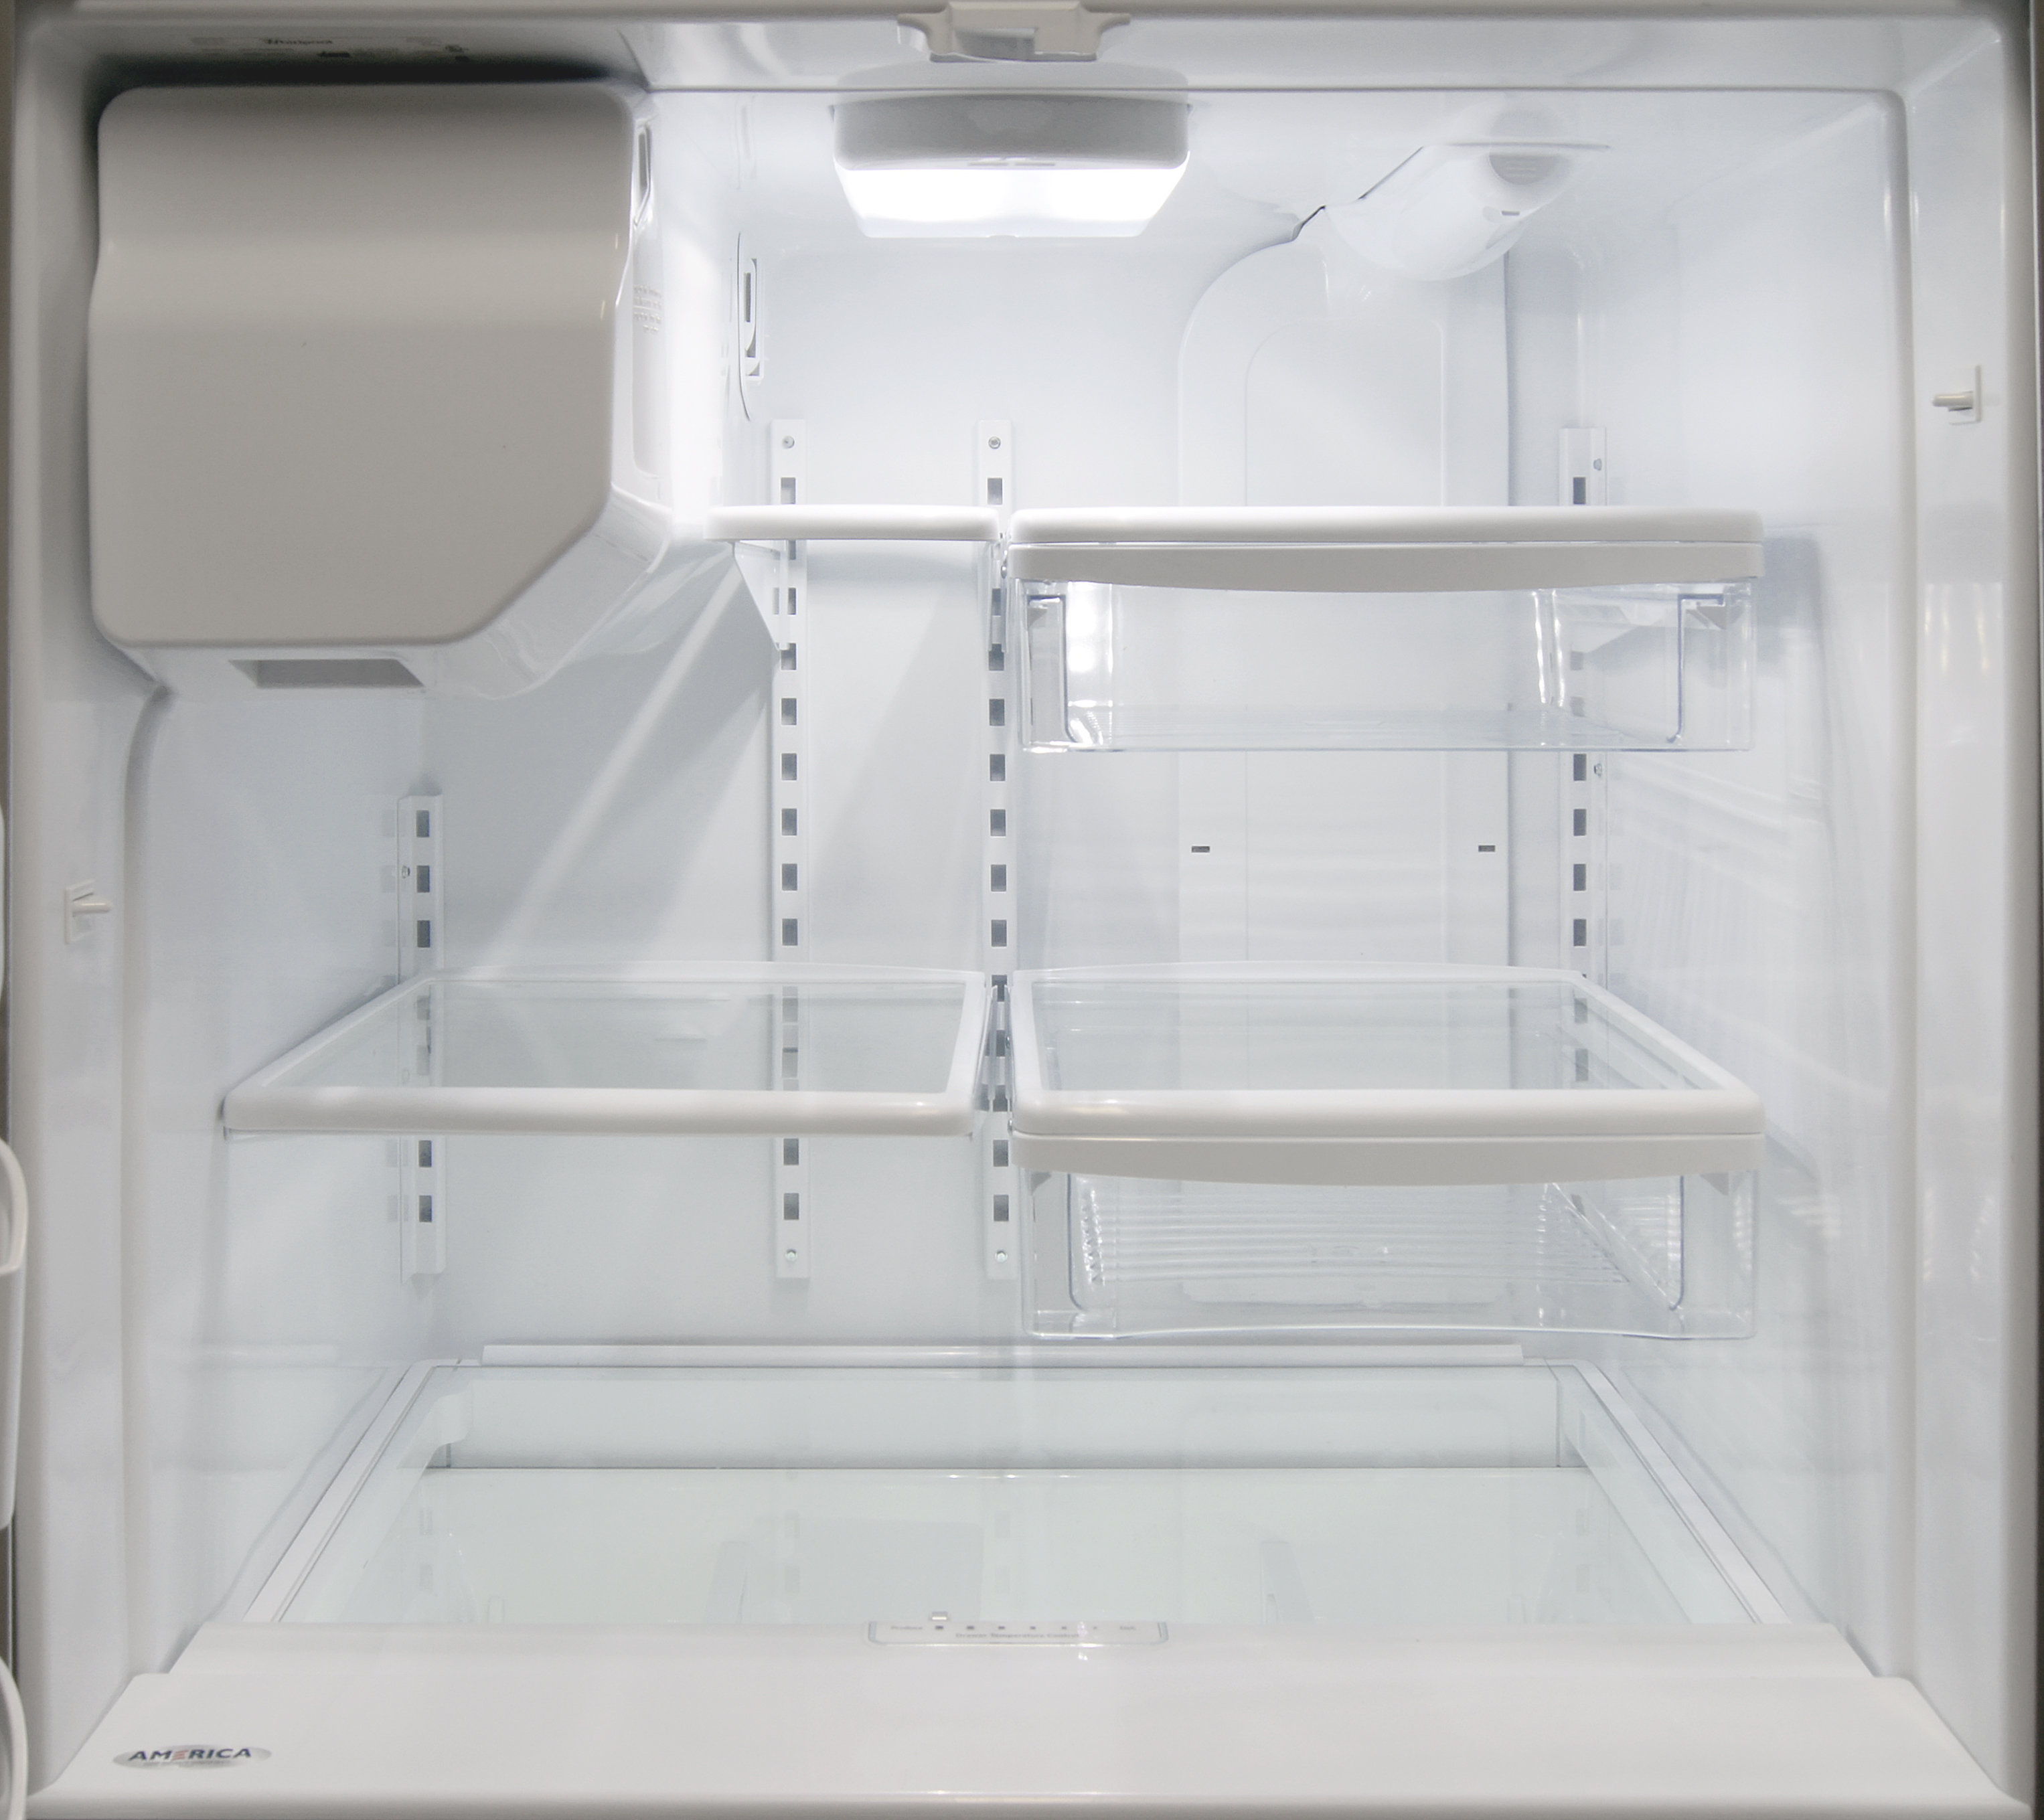 The Whirlpool WRX735SDBM fridge interior would feel a lot roomier if it weren't for that icemaker looming in the corner.